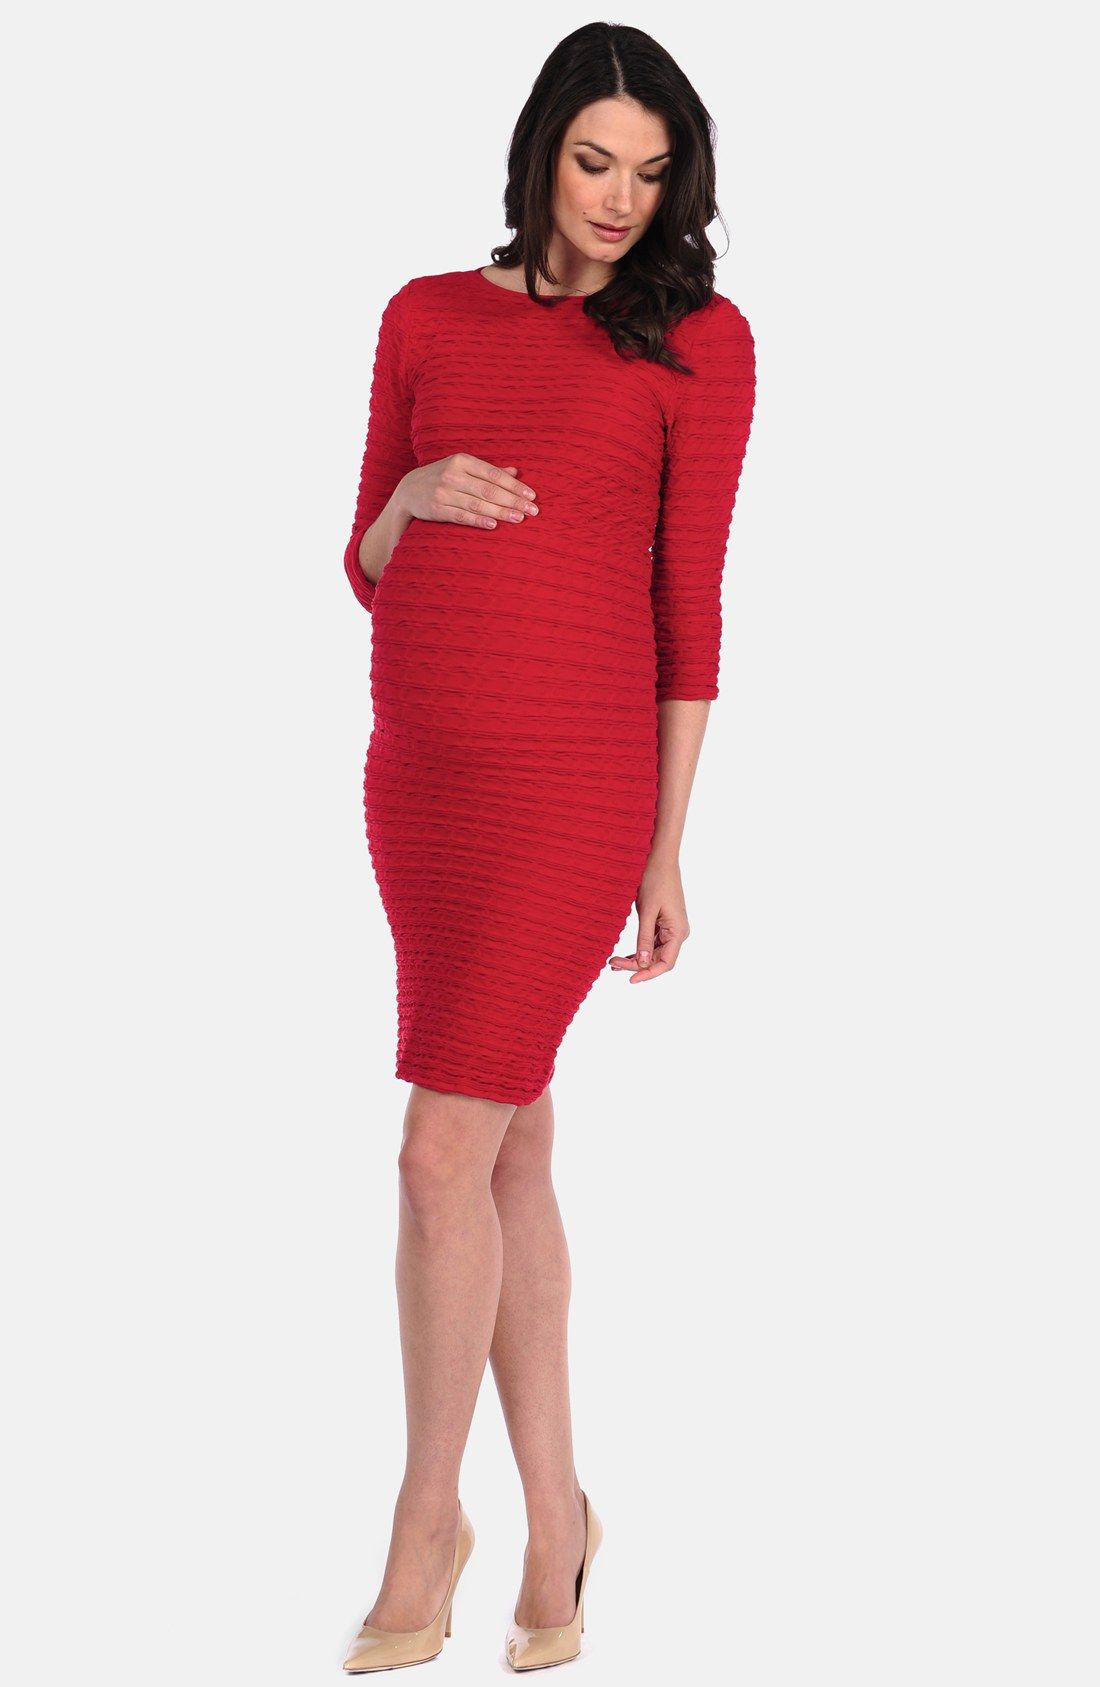 Nordstrom maternity dresses gallery braidsmaid dress cocktail crinkle maternity dress white dress lounges and dresses maternity dresses ombrellifo gallery ombrellifo Choice Image